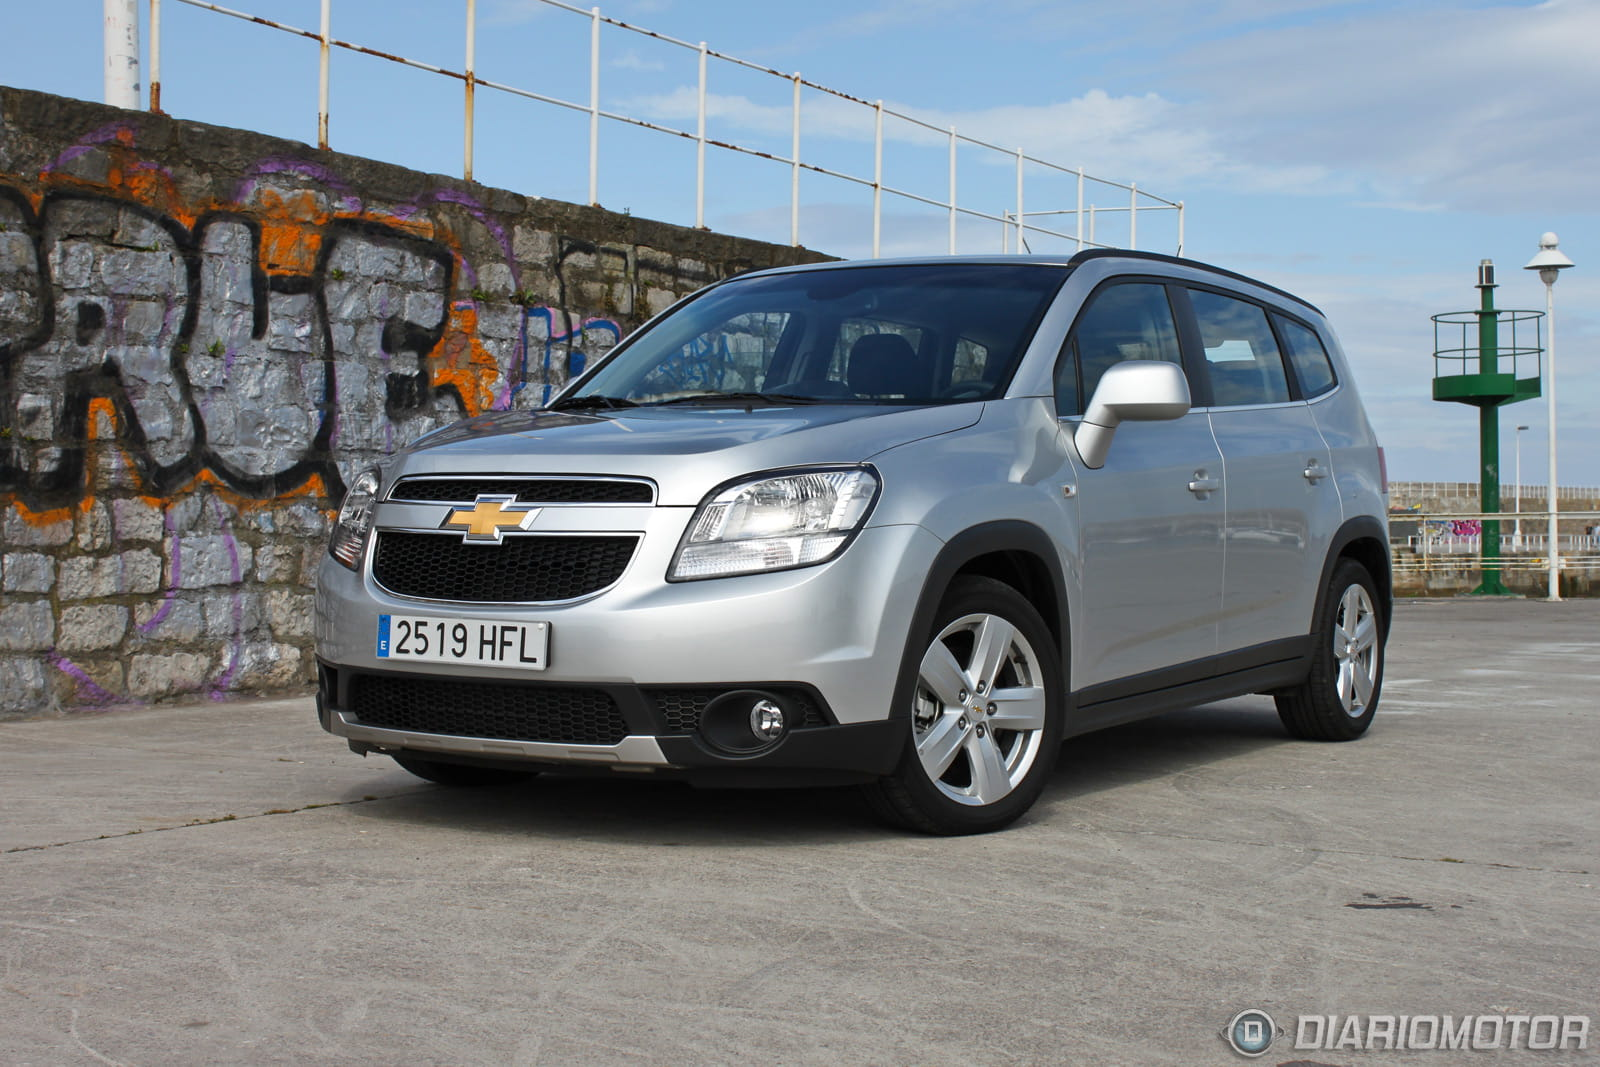 chevrolet orlando 2 0 vcdi aut 163 cv ltz a prueba i. Black Bedroom Furniture Sets. Home Design Ideas